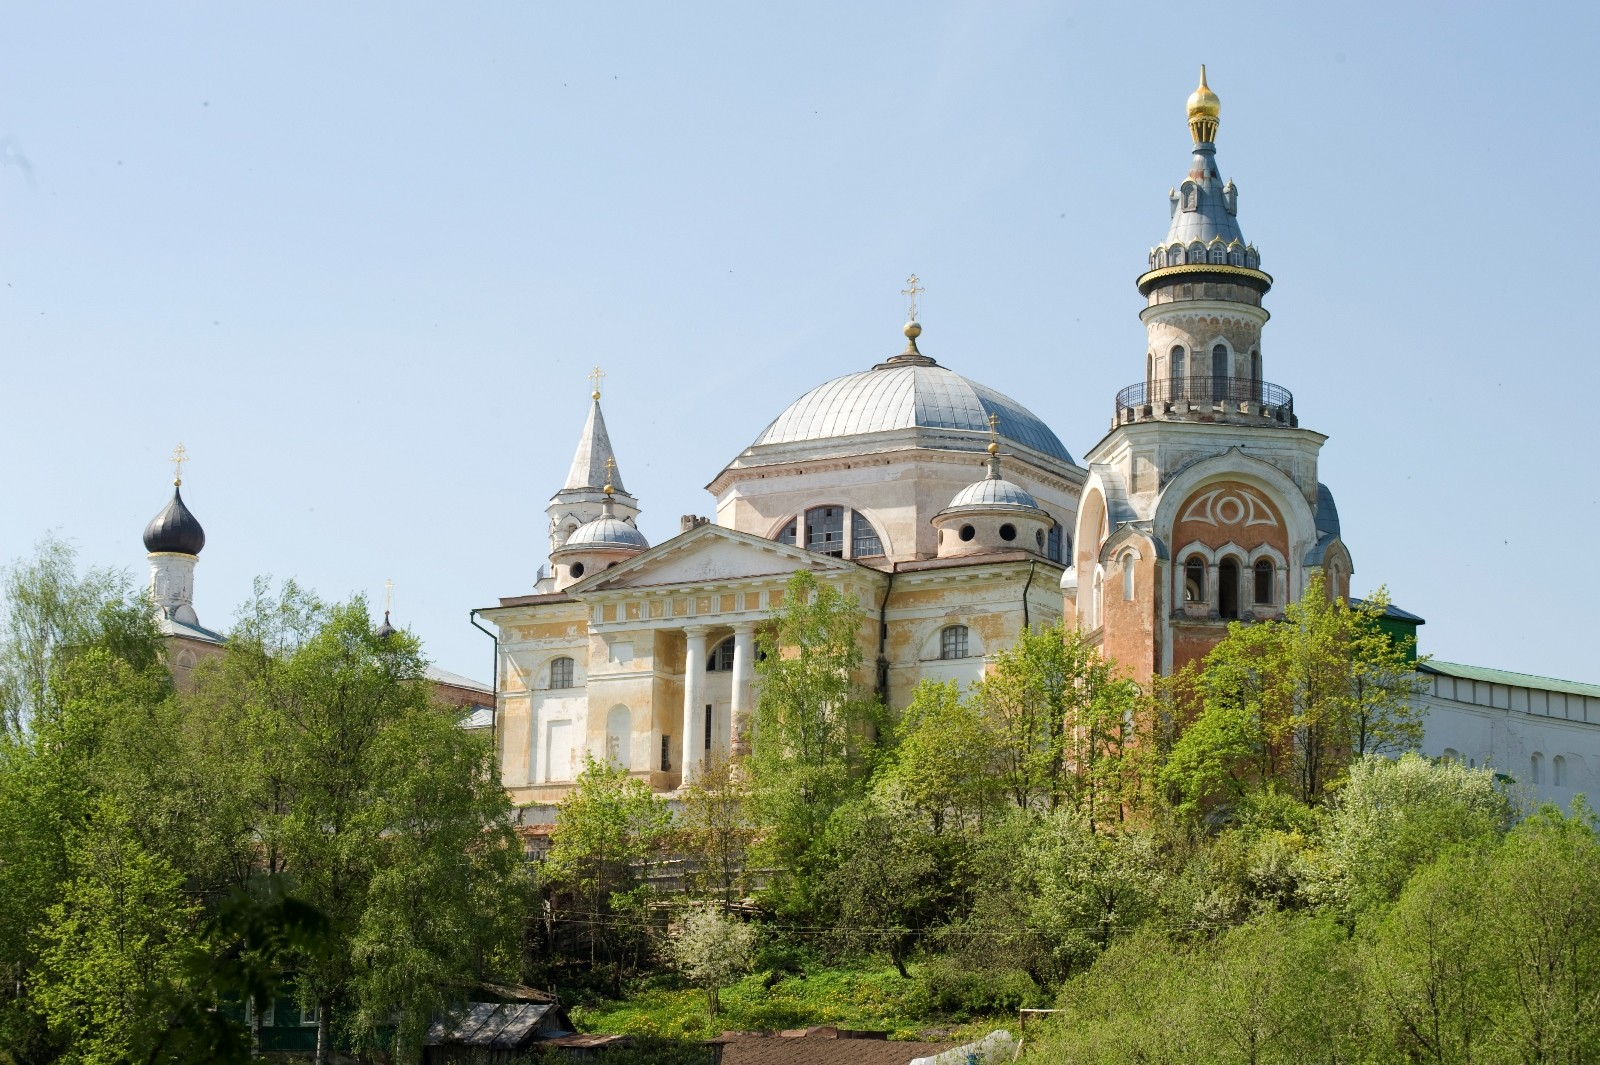 Monastery of Sts. Boris & Gleb. From left: Church of the Presentation, Cathedral of Sts. Boris & Gleb,